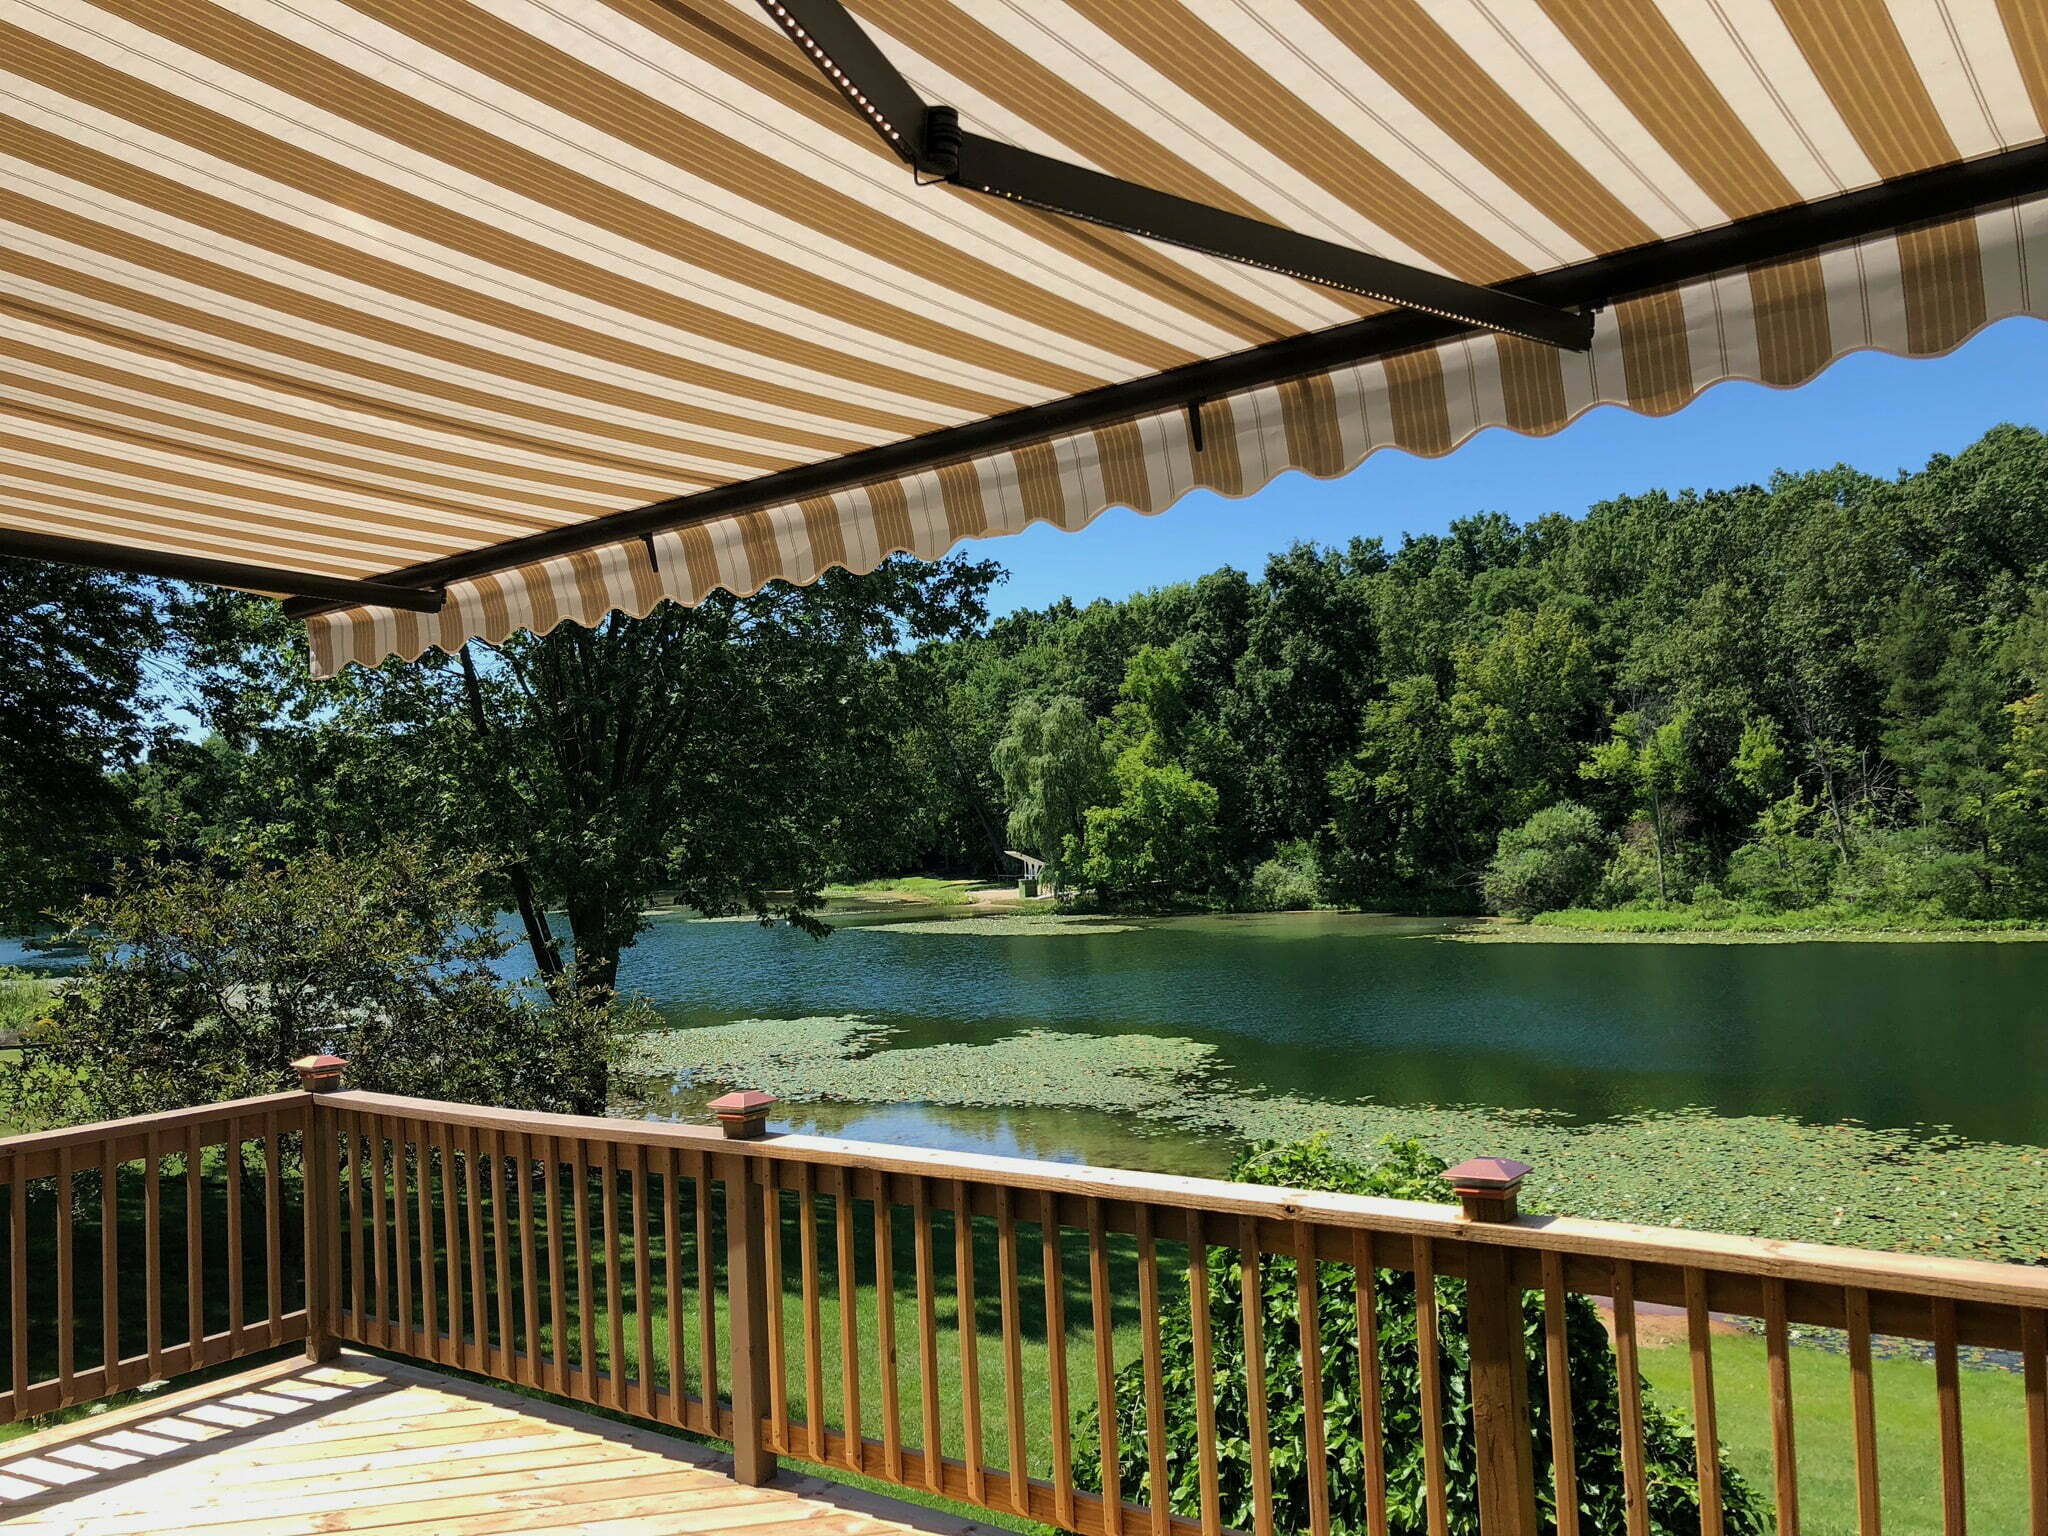 Country Club Awnings for Golf Club with water trap view